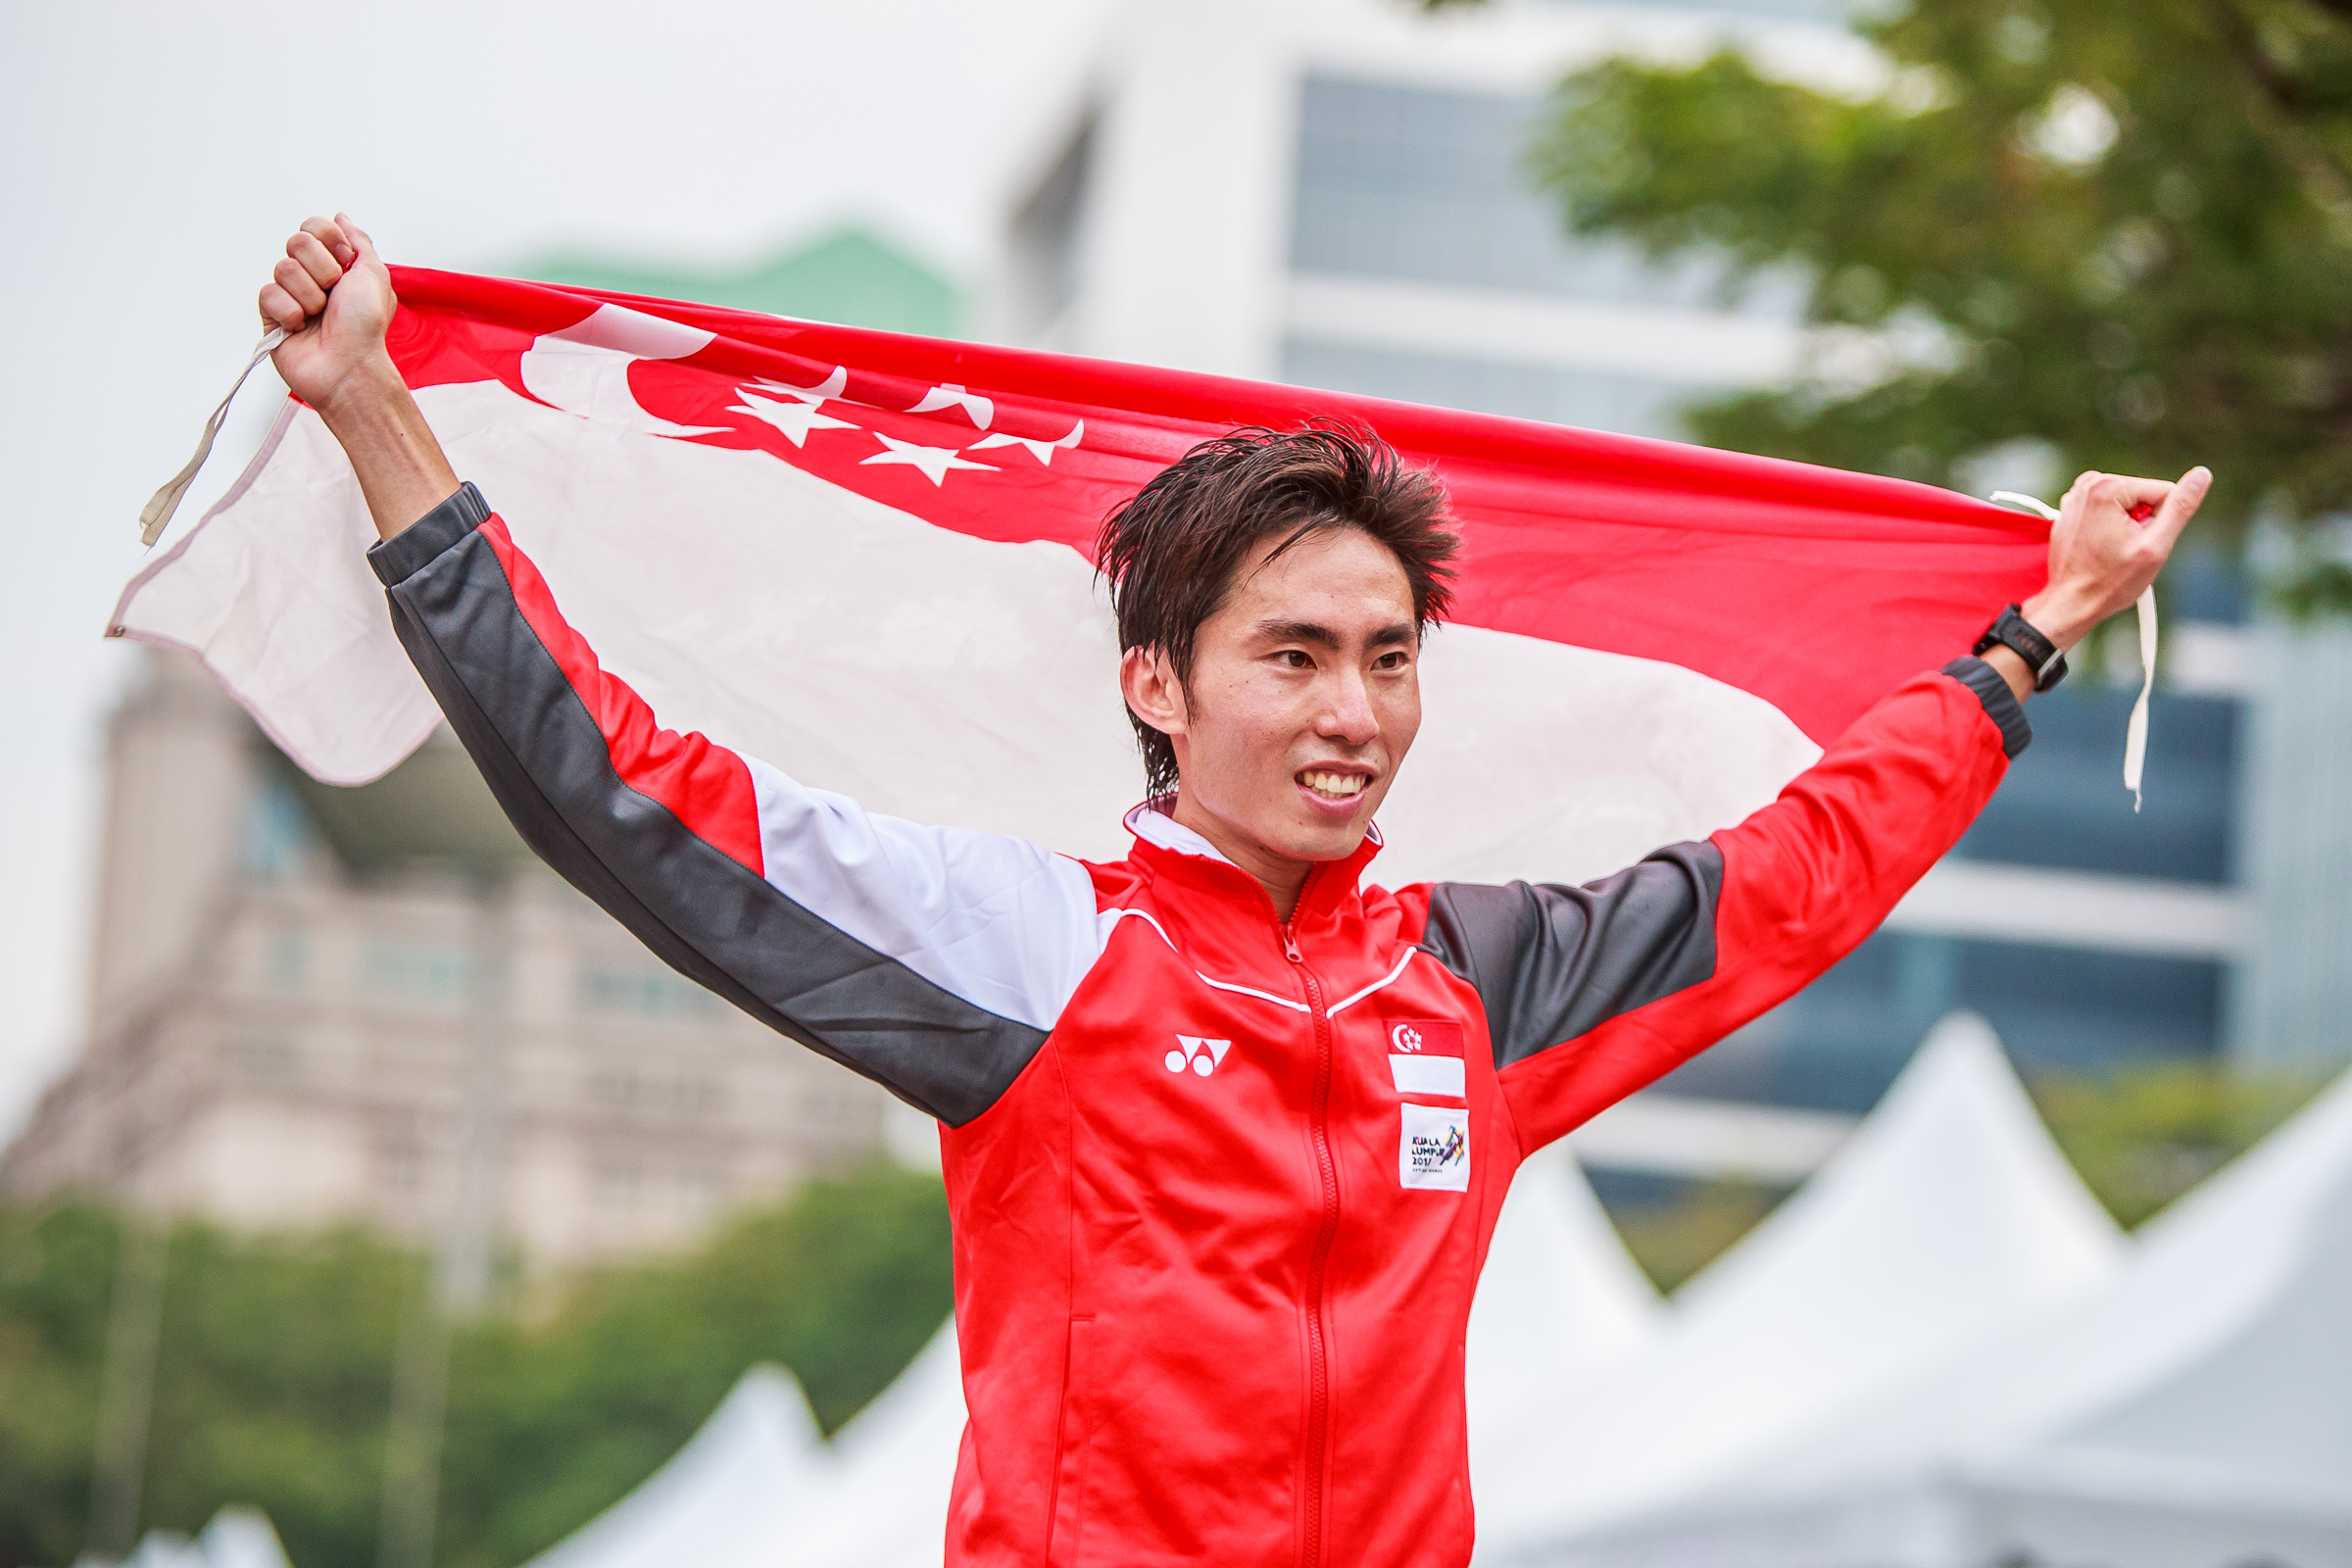 Marathon- Soh Rui Yong of Singapore celebrating after finishing first in Men marathon at Putrajaya during 29th SEA Games in KL on 19 Aug 2017 (Photo by Stanley Cheah / SportSG)